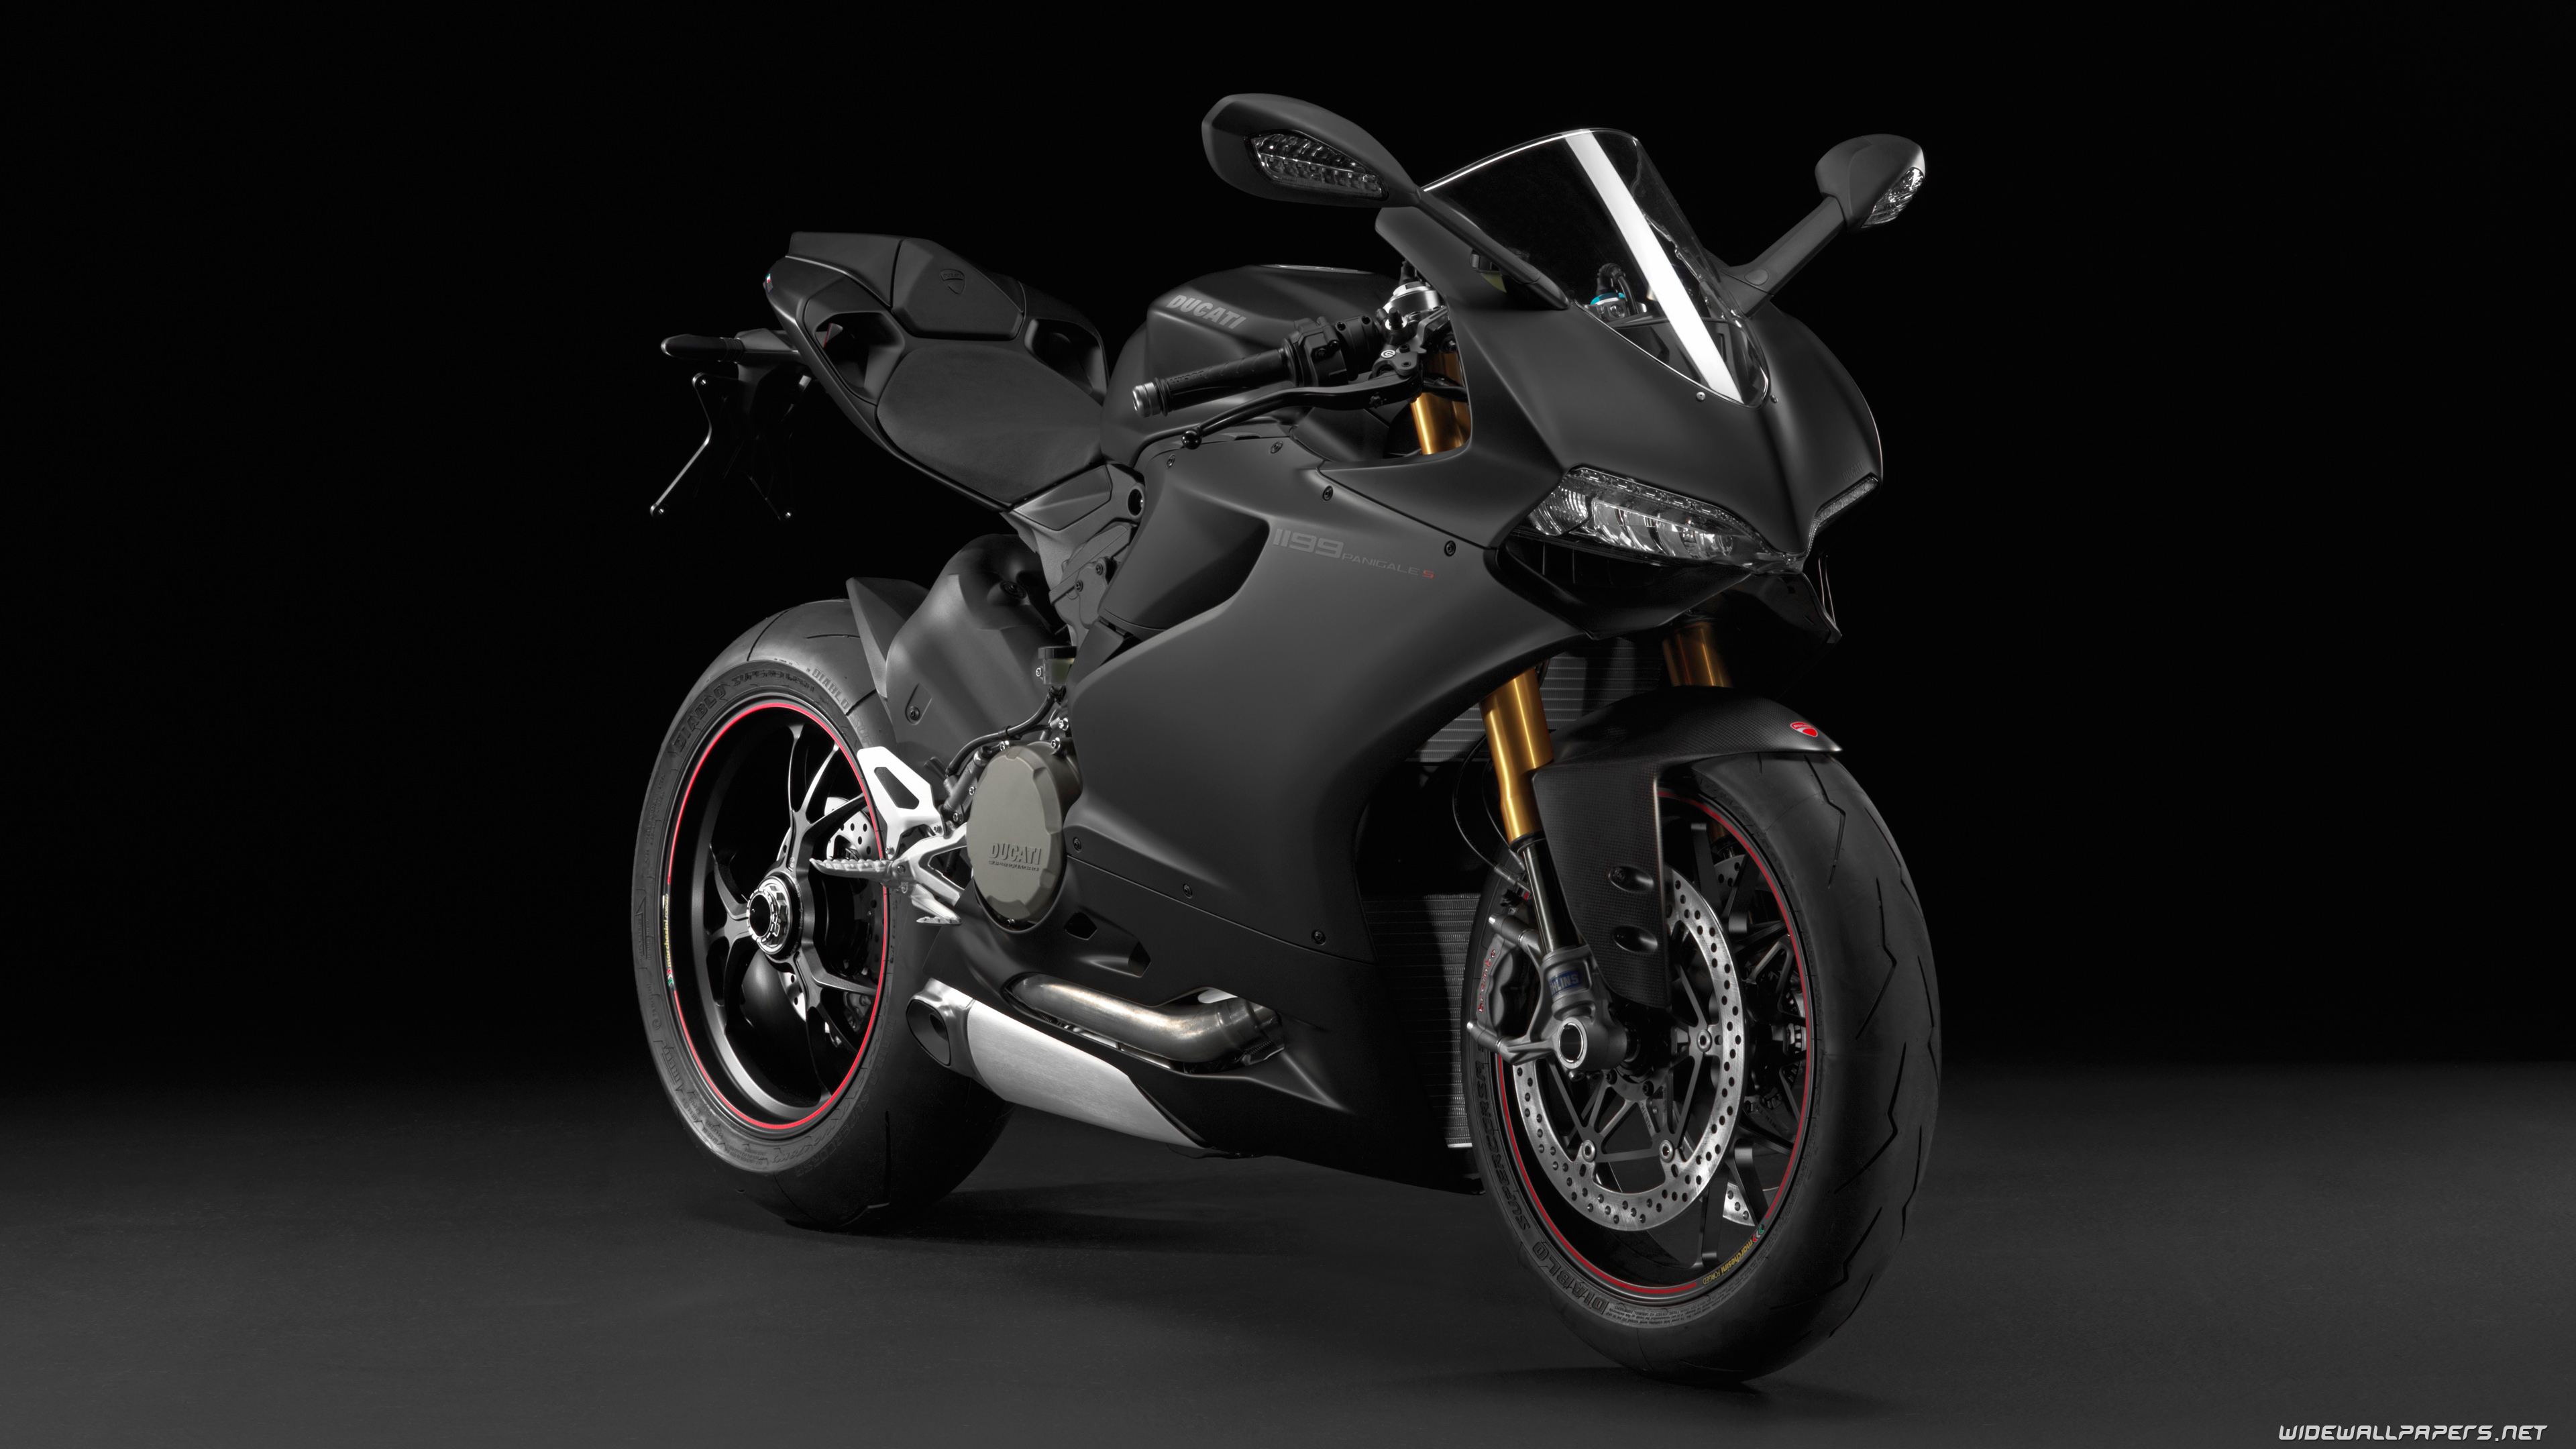 Superbike Hd Wallpaper Full Screen: Ducati Superbike 1199 Panigale Motorcycle Desktop